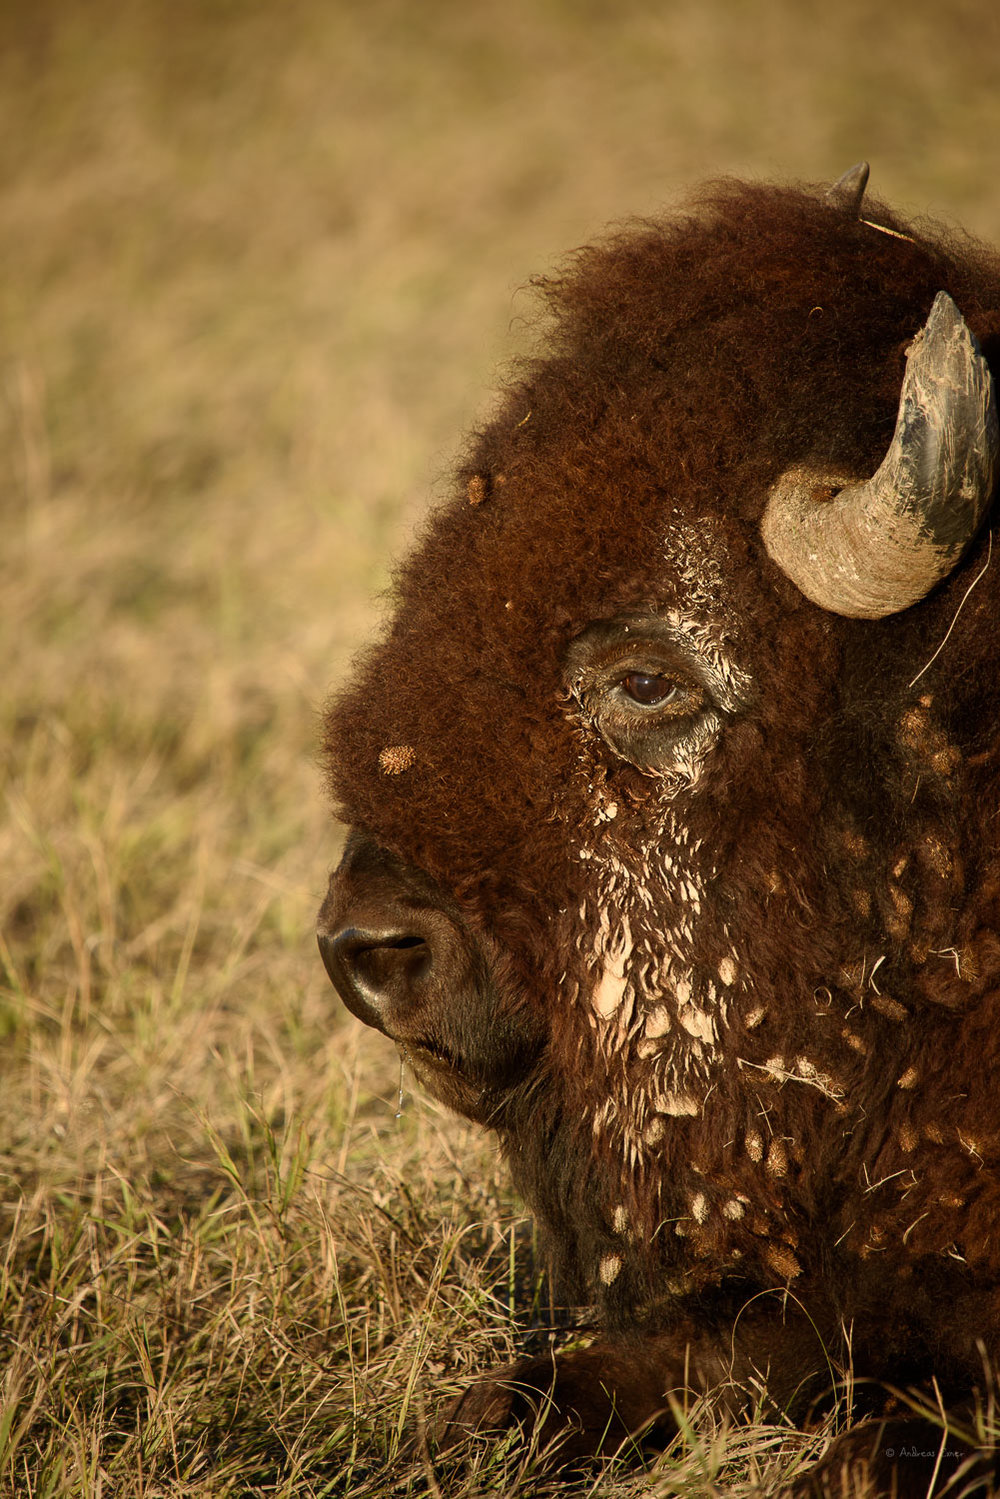 Bison, Badlands NP, SD